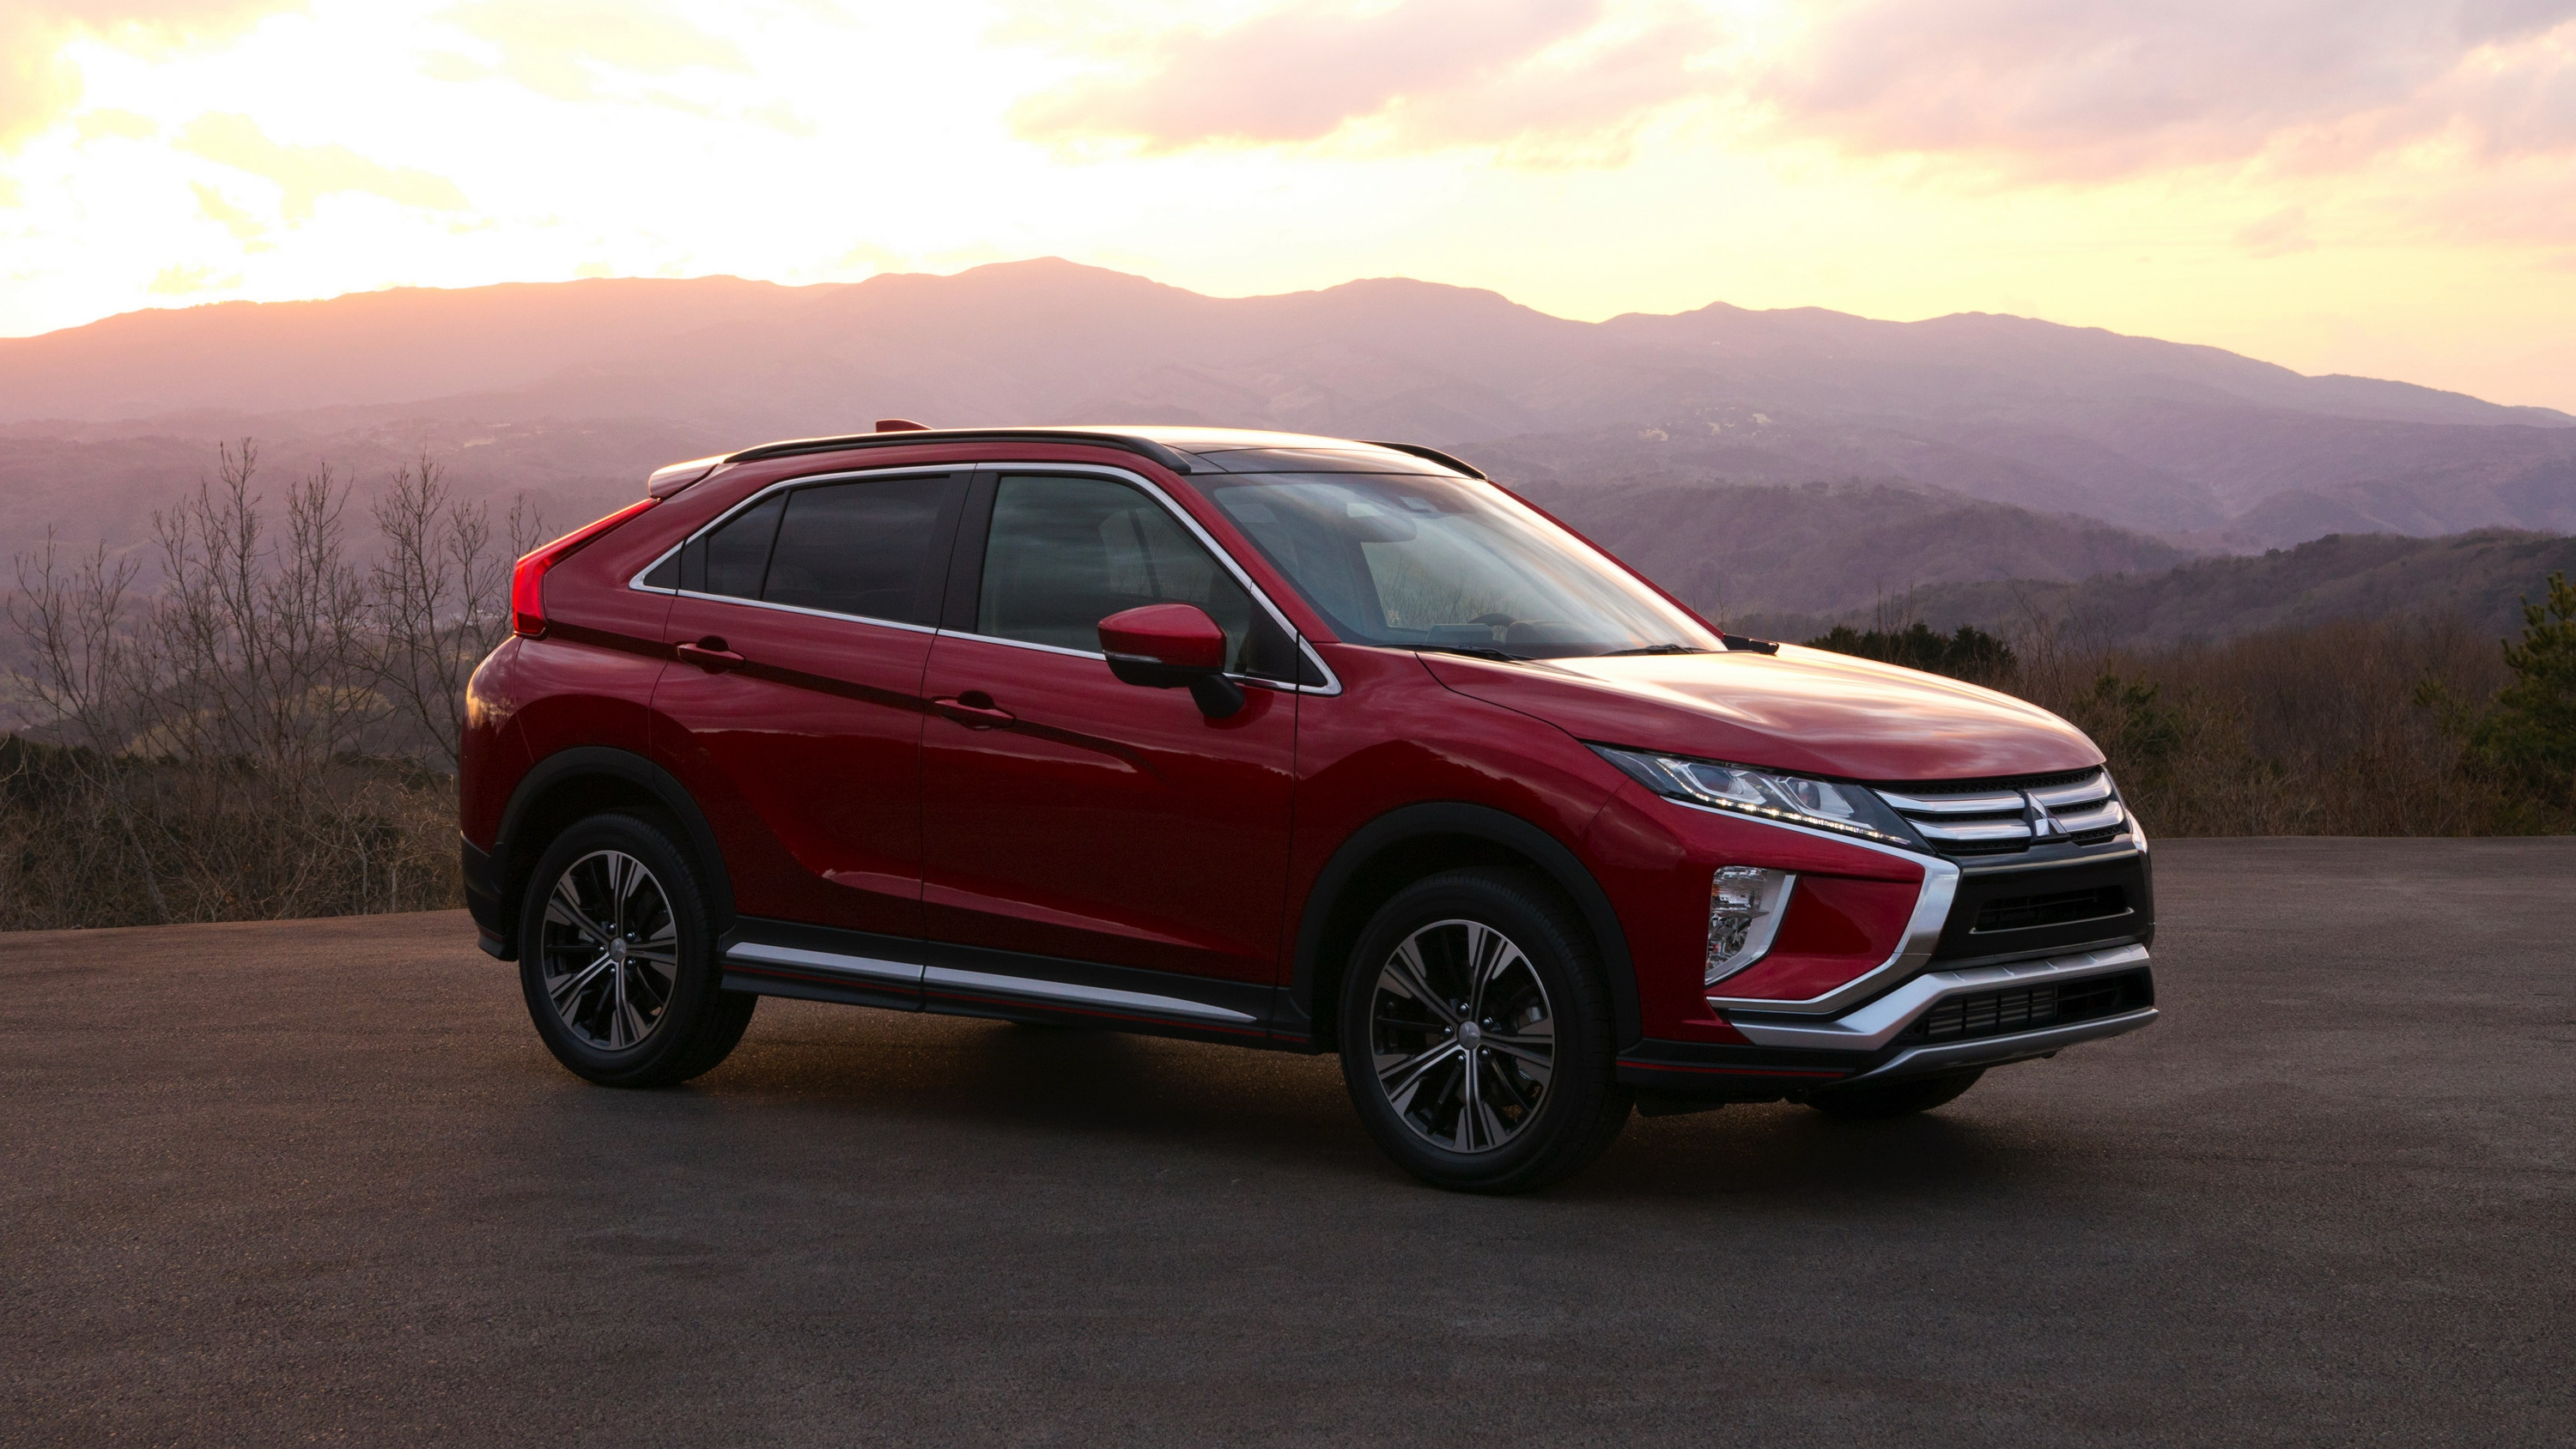 2018 Mitsubishi Eclipse Cross Pictures, Photos, Wallpapers. | Top Speed